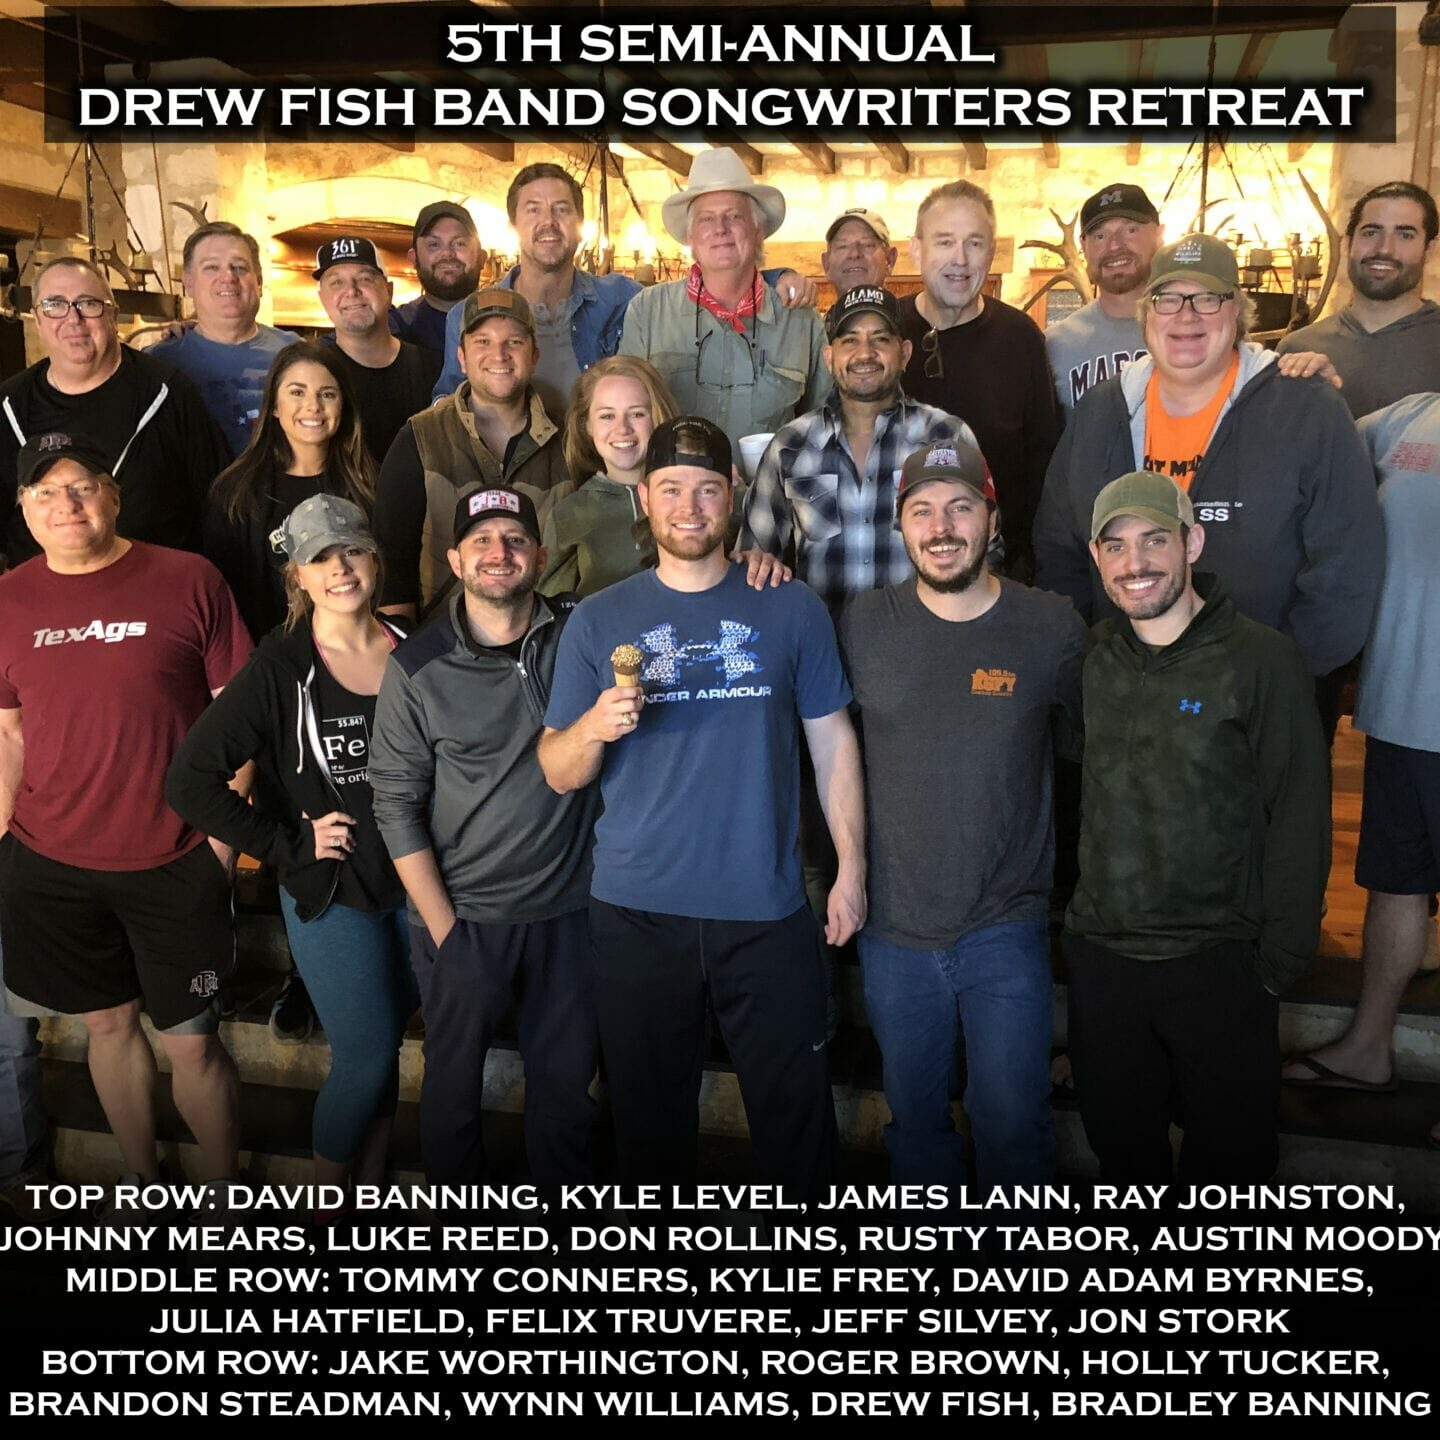 5th DFB Songwriters Retreat